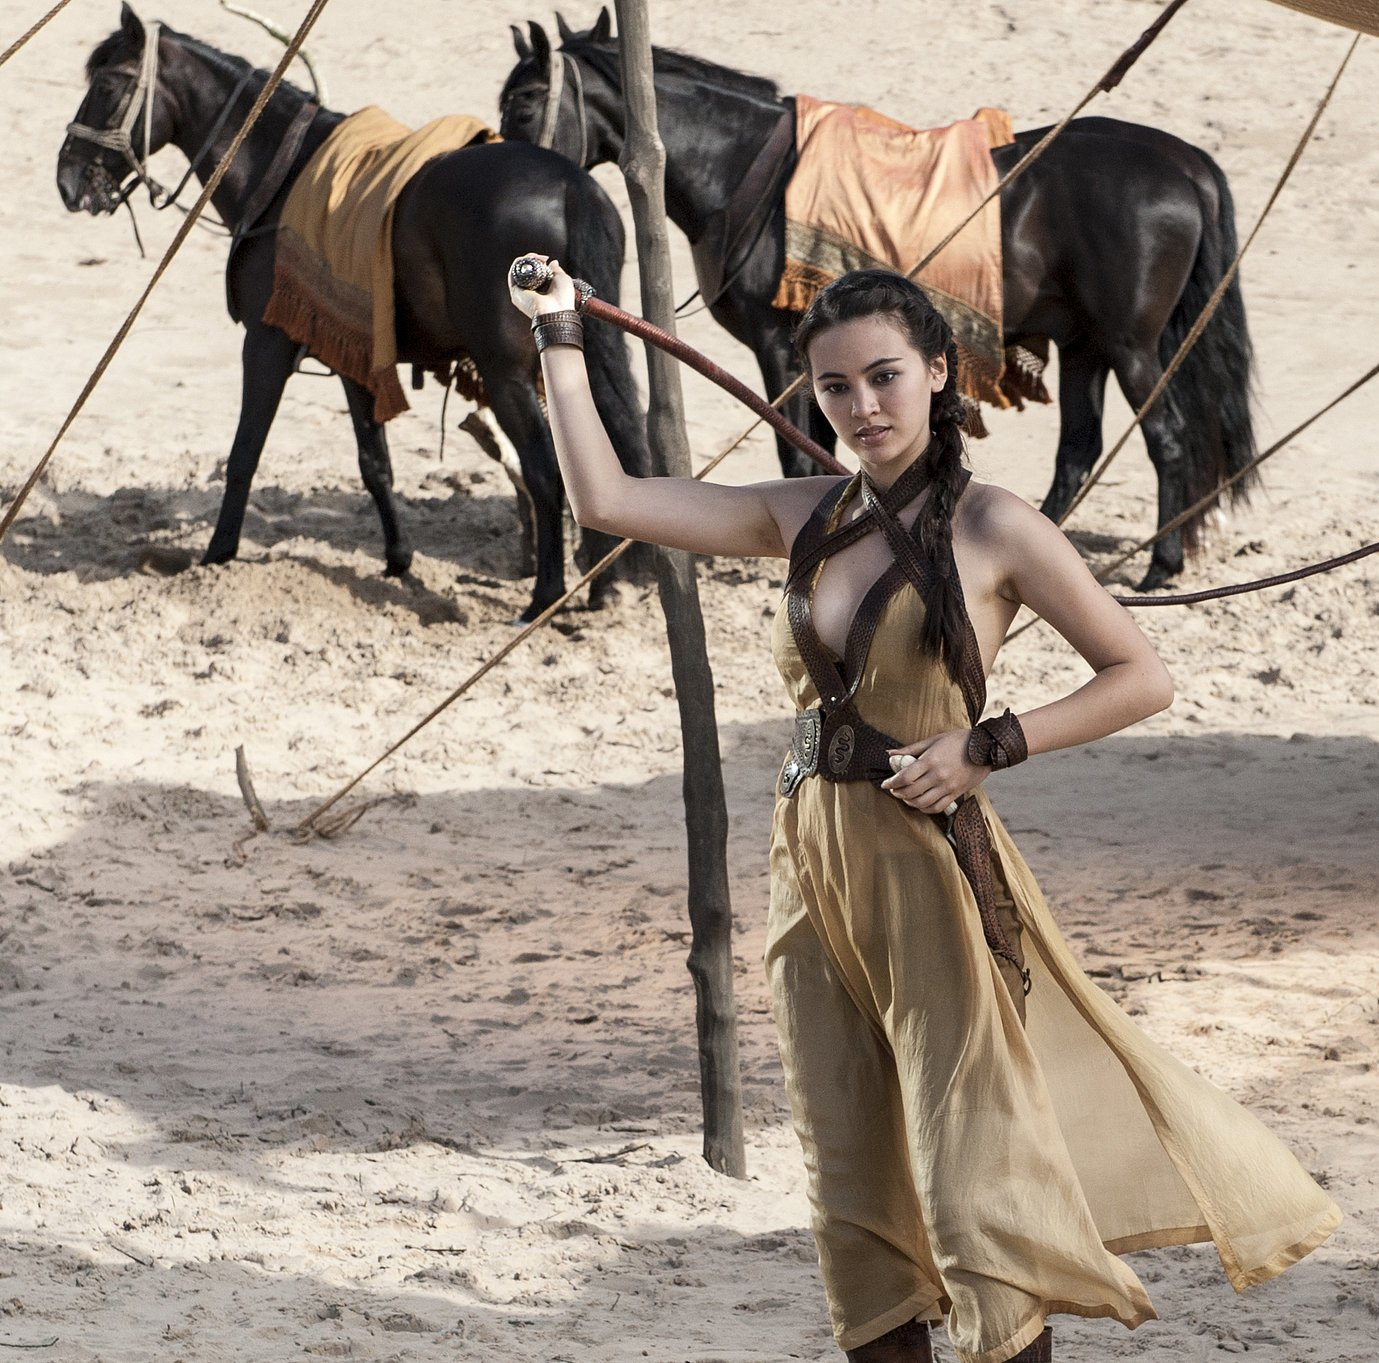 Jessica Henwick as Nymeria Sand, Oberyn's second-oldest daughter who is deadly with a whip in Game Of Thrones Season 5